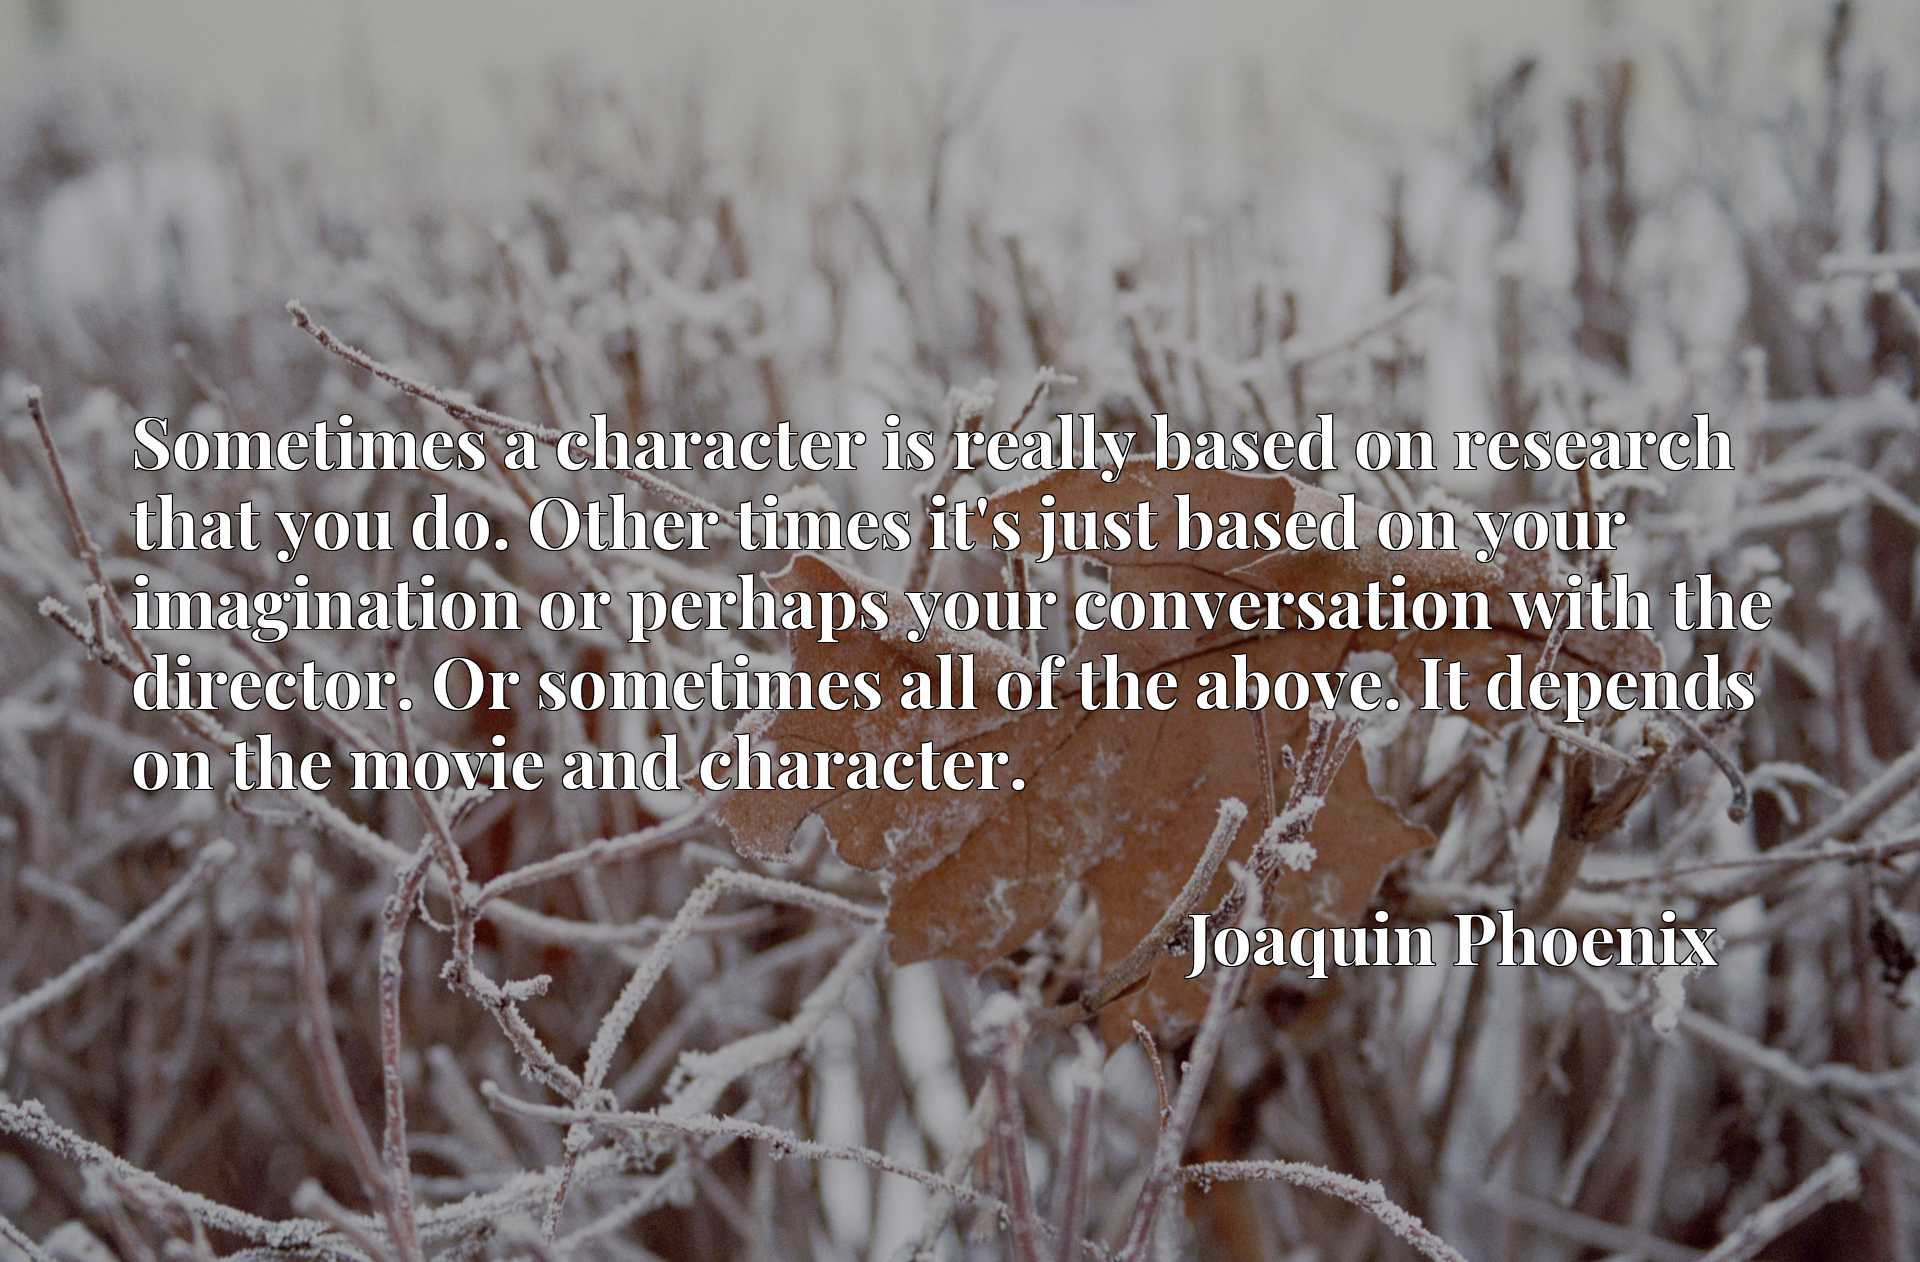 Sometimes a character is really based on research that you do. Other times it's just based on your imagination or perhaps your conversation with the director. Or sometimes all of the above. It depends on the movie and character.